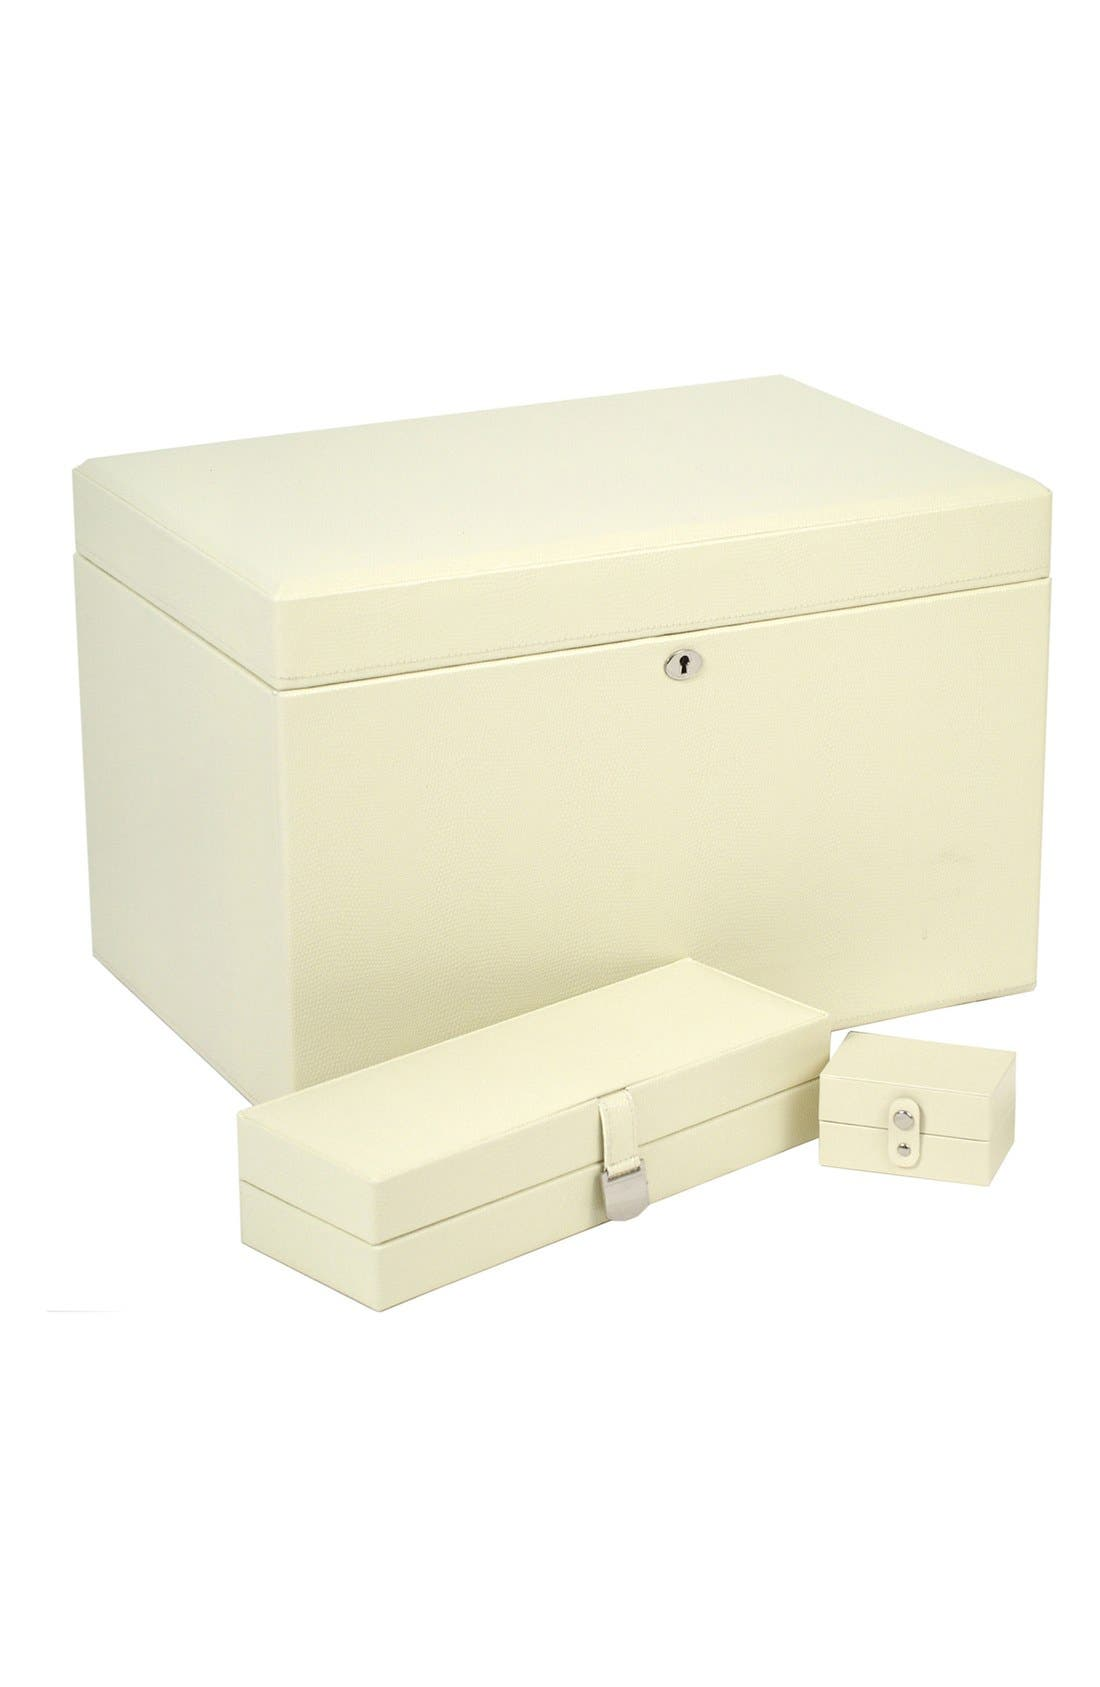 London Large Jewelry Box,                         Main,                         color, CREAM